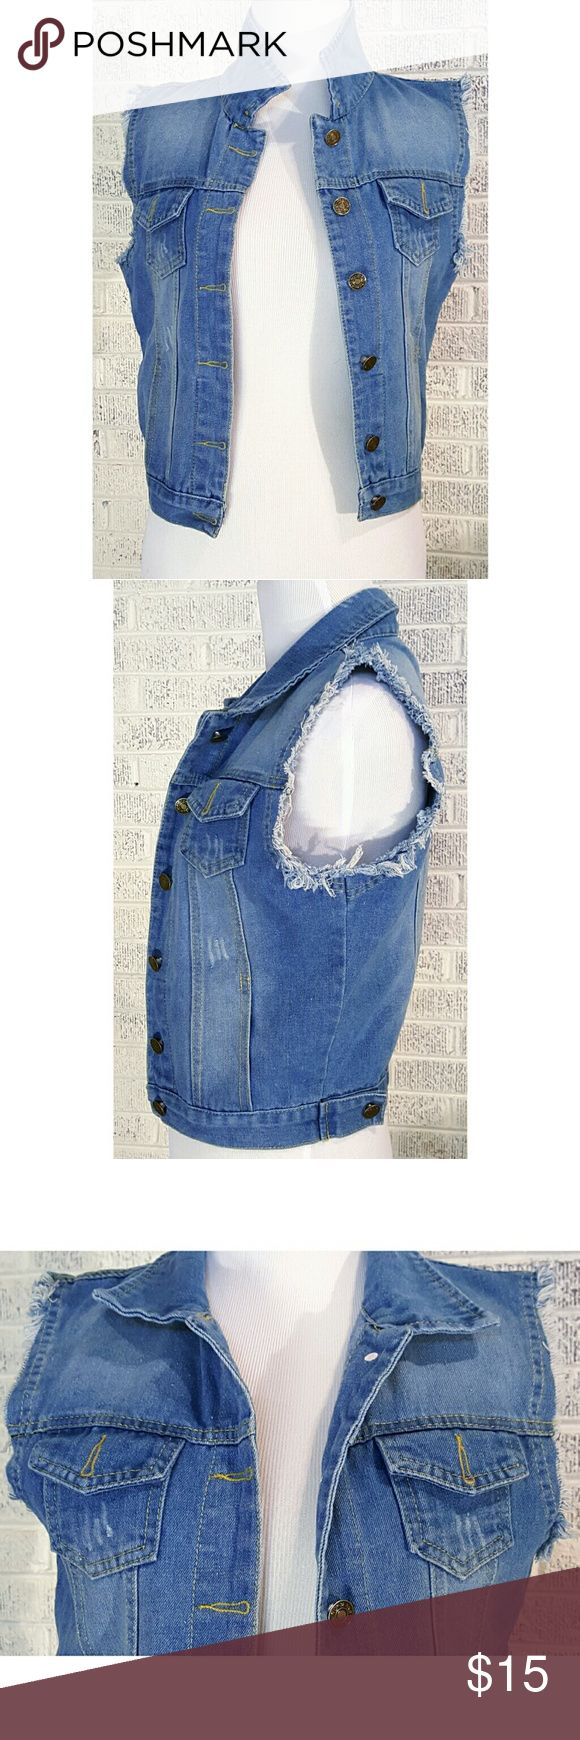 Hengsheng Distressed Sleeveless Denim Jacket Hengsheng Distressed Cut Off Sleeveless Denim Jacket  Women's/Juniors Size Small  Measurements on Request New without Tags  Gift Quality  Thanks We Ship Fast  Updating New Items Daily Hengsheng Jackets & Coats Jean Jackets